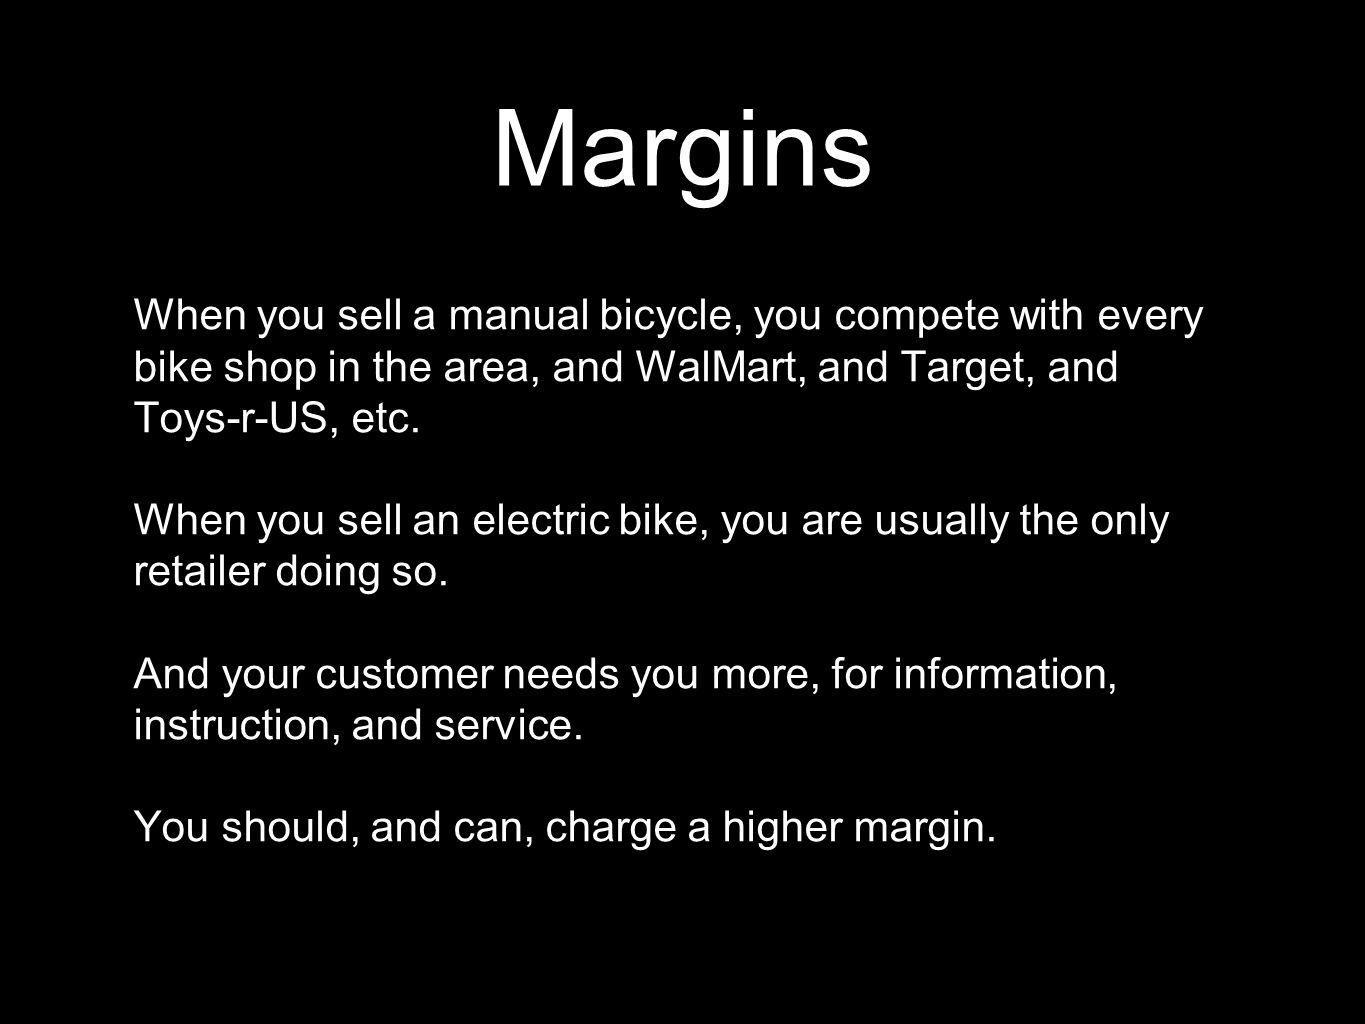 Margins When you sell a manual bicycle, you compete with every bike shop in the area, and WalMart, and Target, and Toys-r-US, etc. When you sell an el